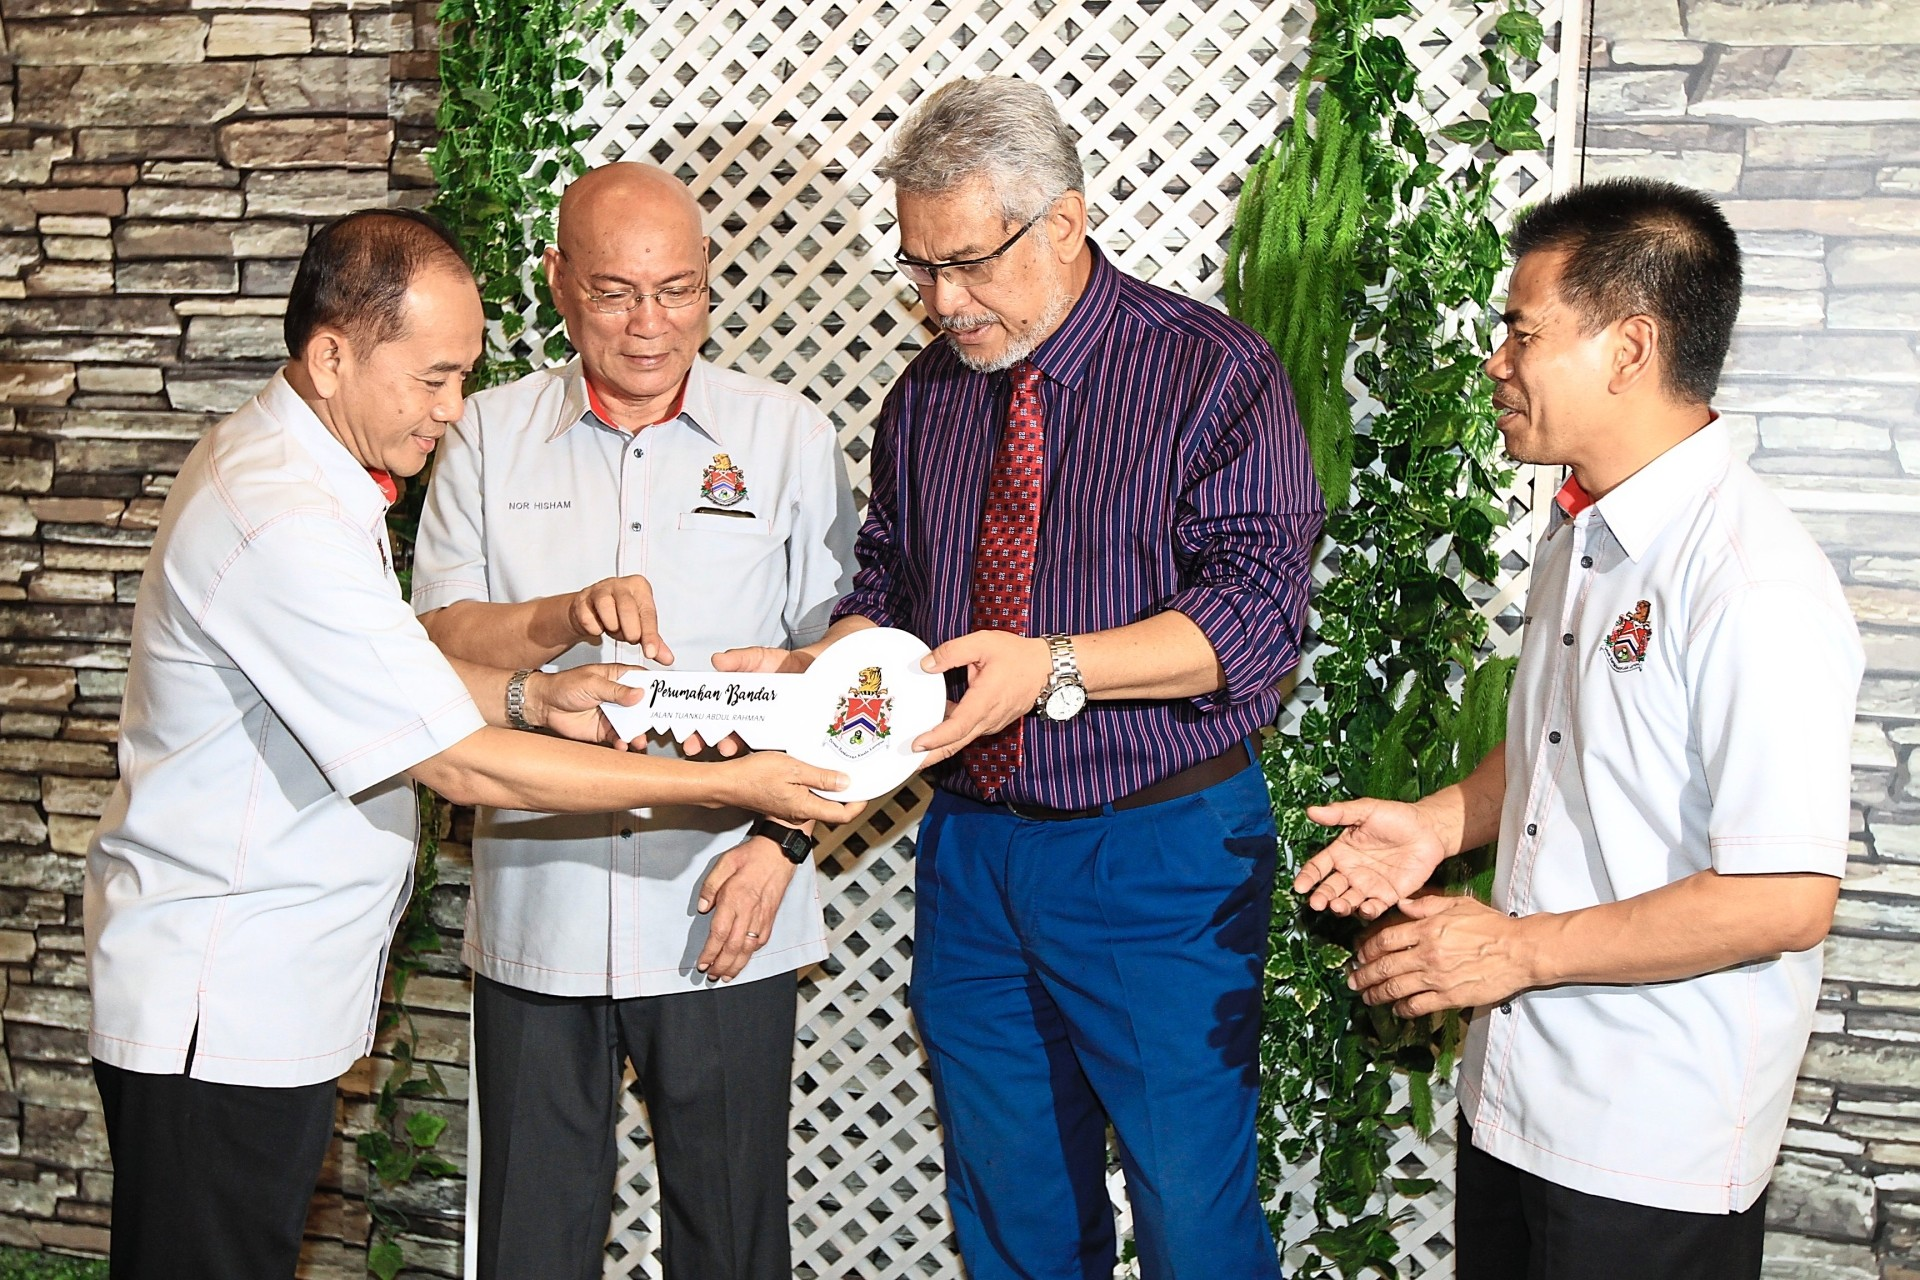 Khalid (third from left) and Nor Hisham (second from left) at the launch of DBKL's pilot micro-housing project at Jalan Tuanku Abdul Rahman. Flanking them are DBKL executive directors Datuk Ibrahim Yusof (socio-economy) (left) and Mohd Sahak Surip (project implementation). — LOW LAY PHON/The Star